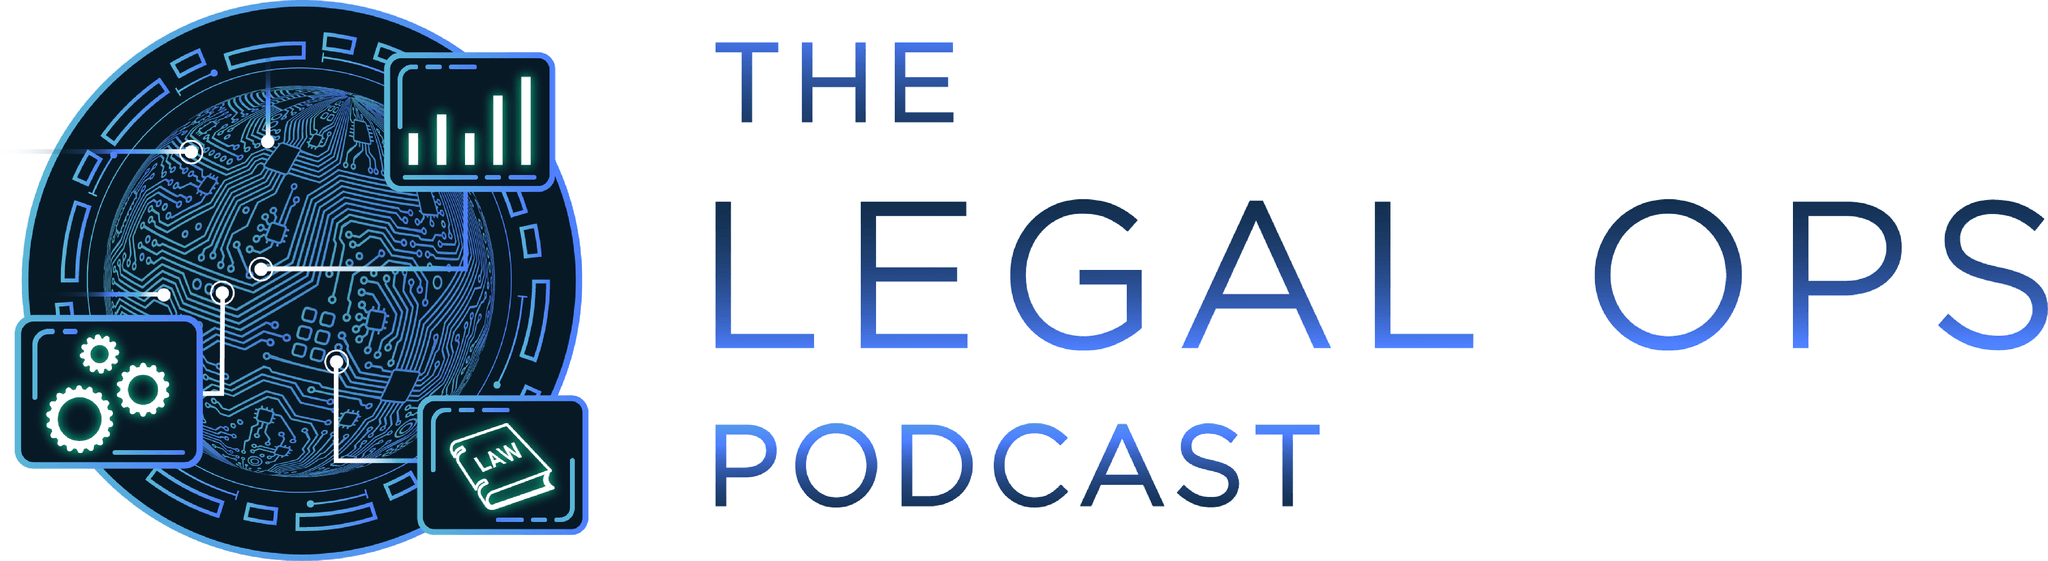 Legal Ops Podcast